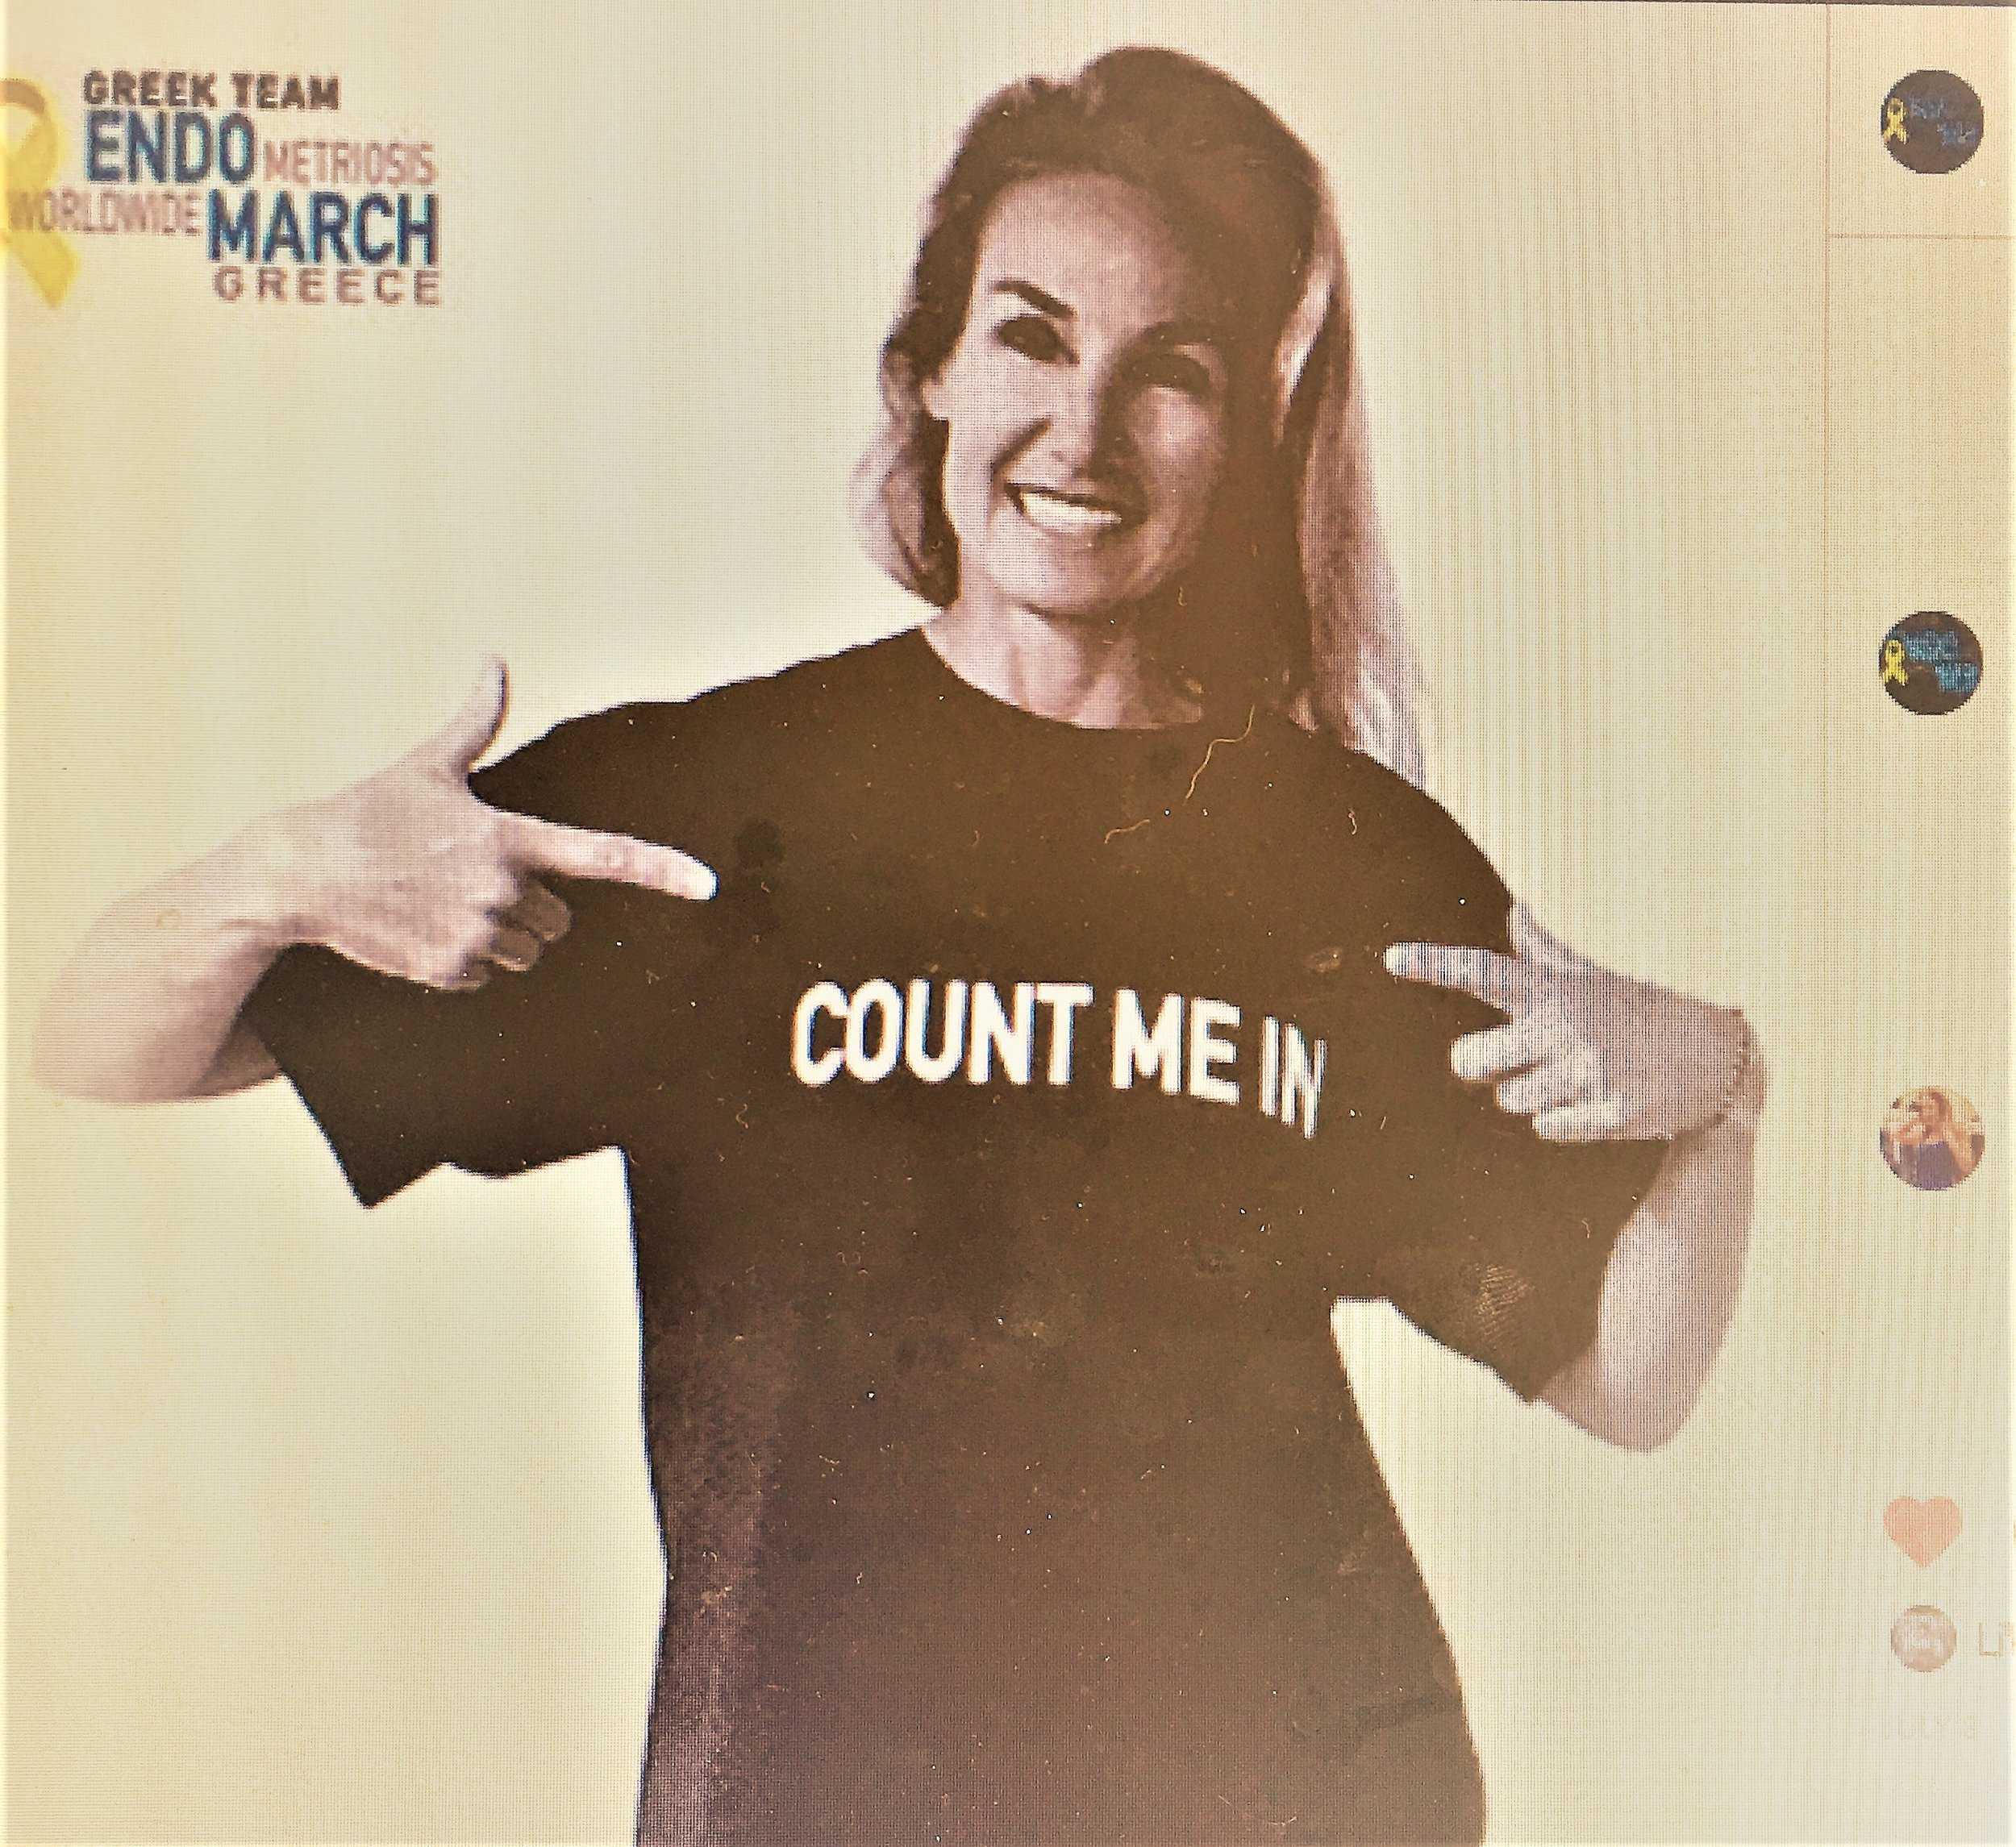 SEND YOUR PICTURES - Send your pictures with your favorite 'Count me In' t-shirt or signs and we'll include you in this year's promotional videos and our ever-growing #EndoQuilt.